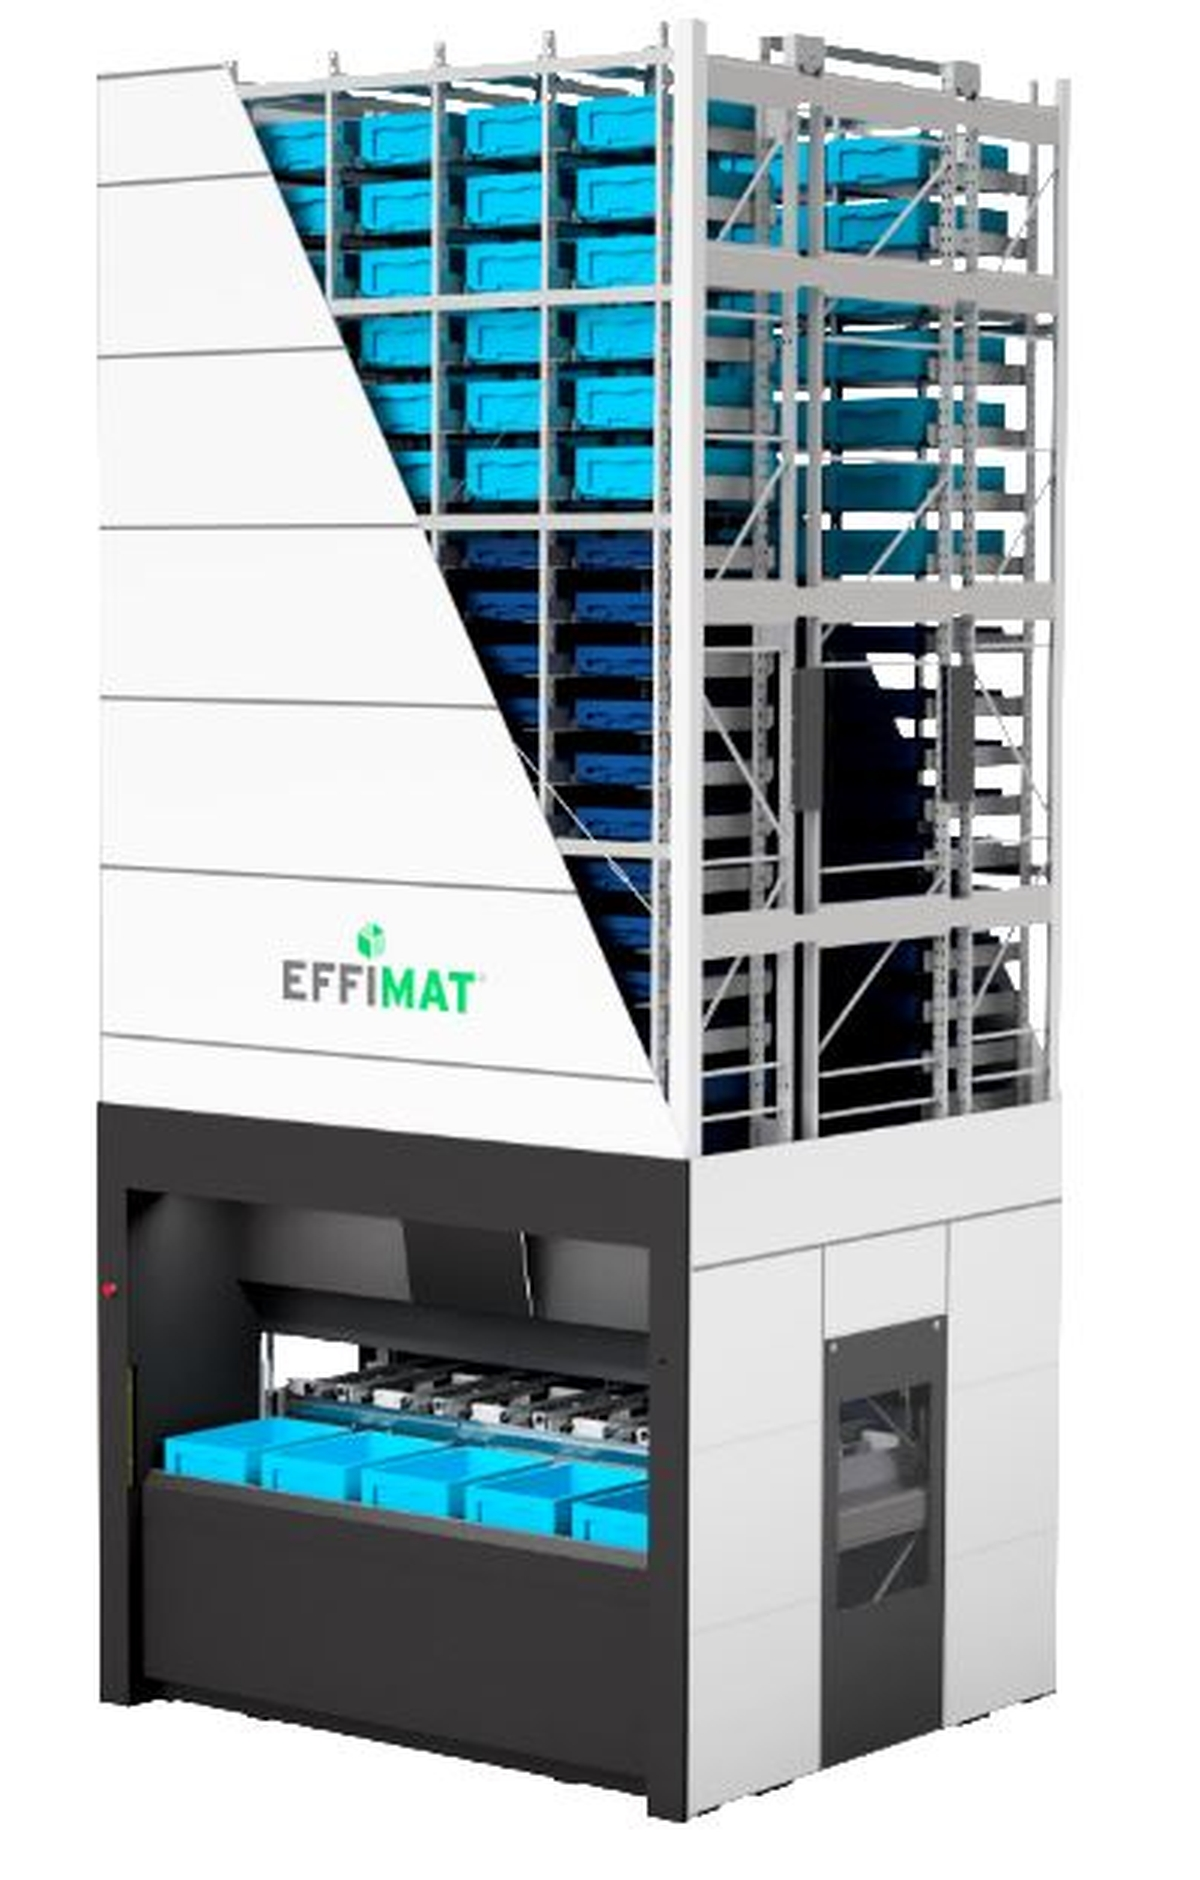 EFFIMAT® - A NEW LEVEL OF EFFICIENCY